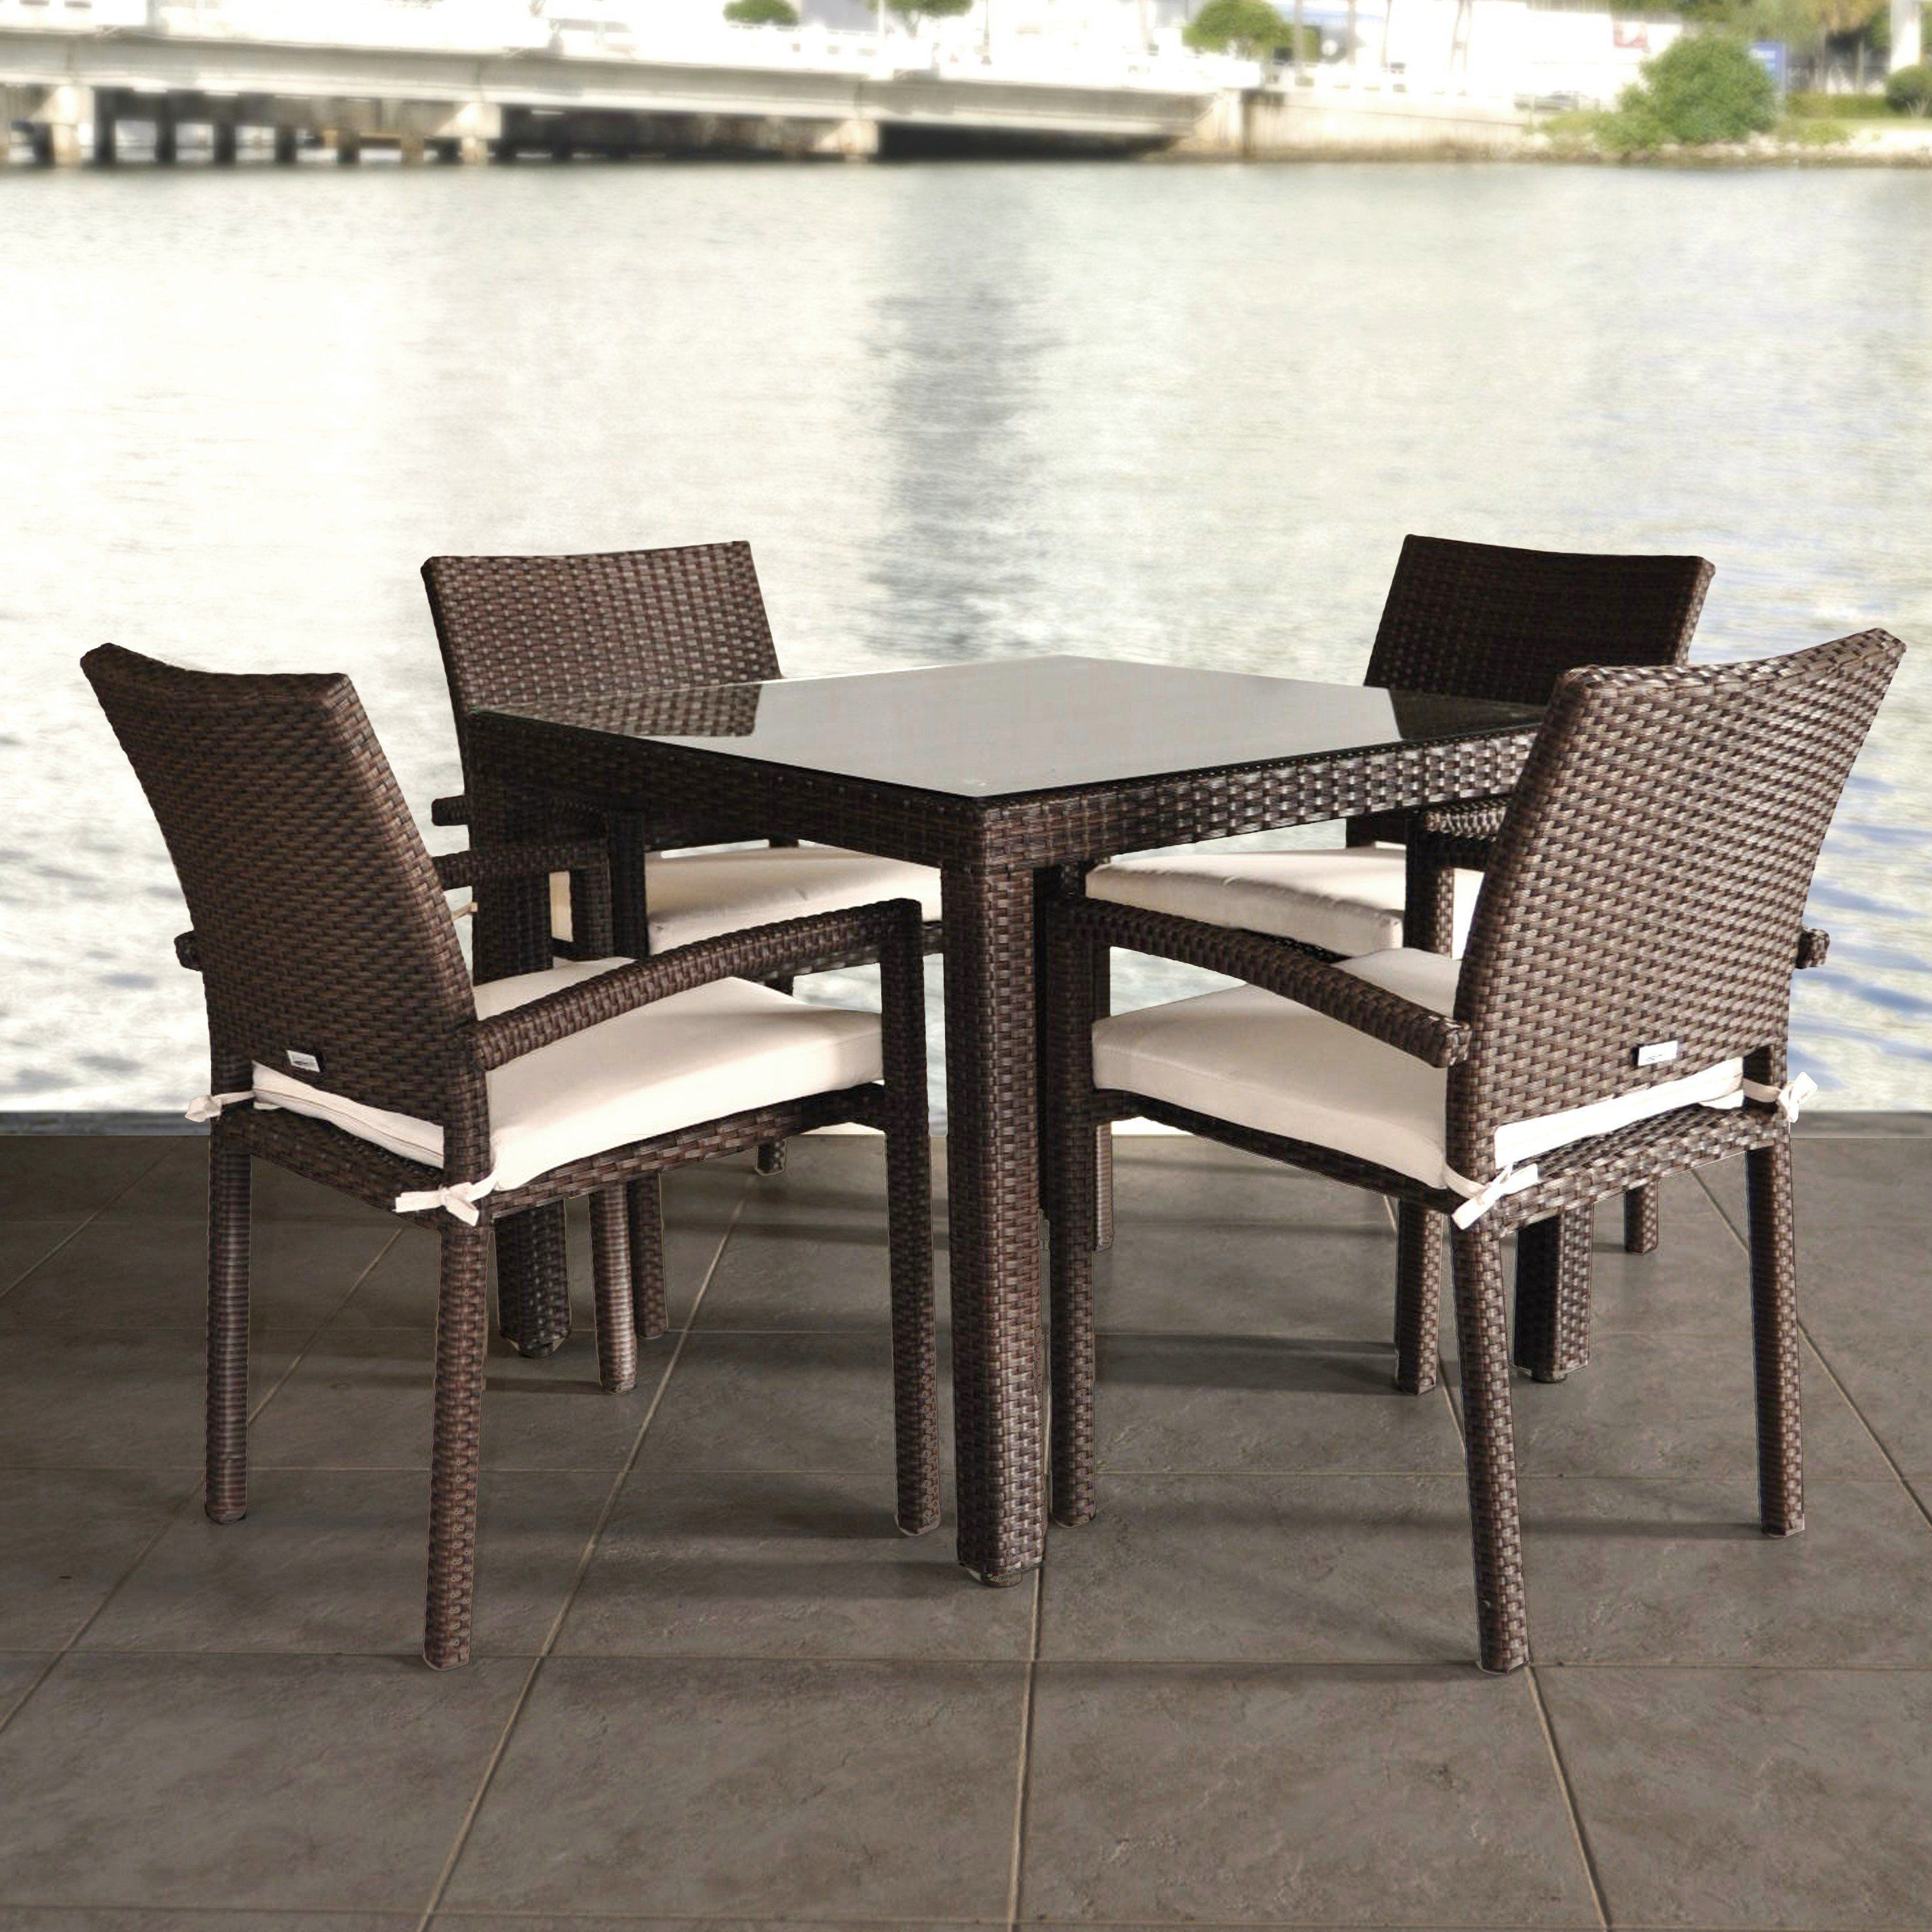 Outdoor Zumba All Weather Wicker Patio Dining Set Patio